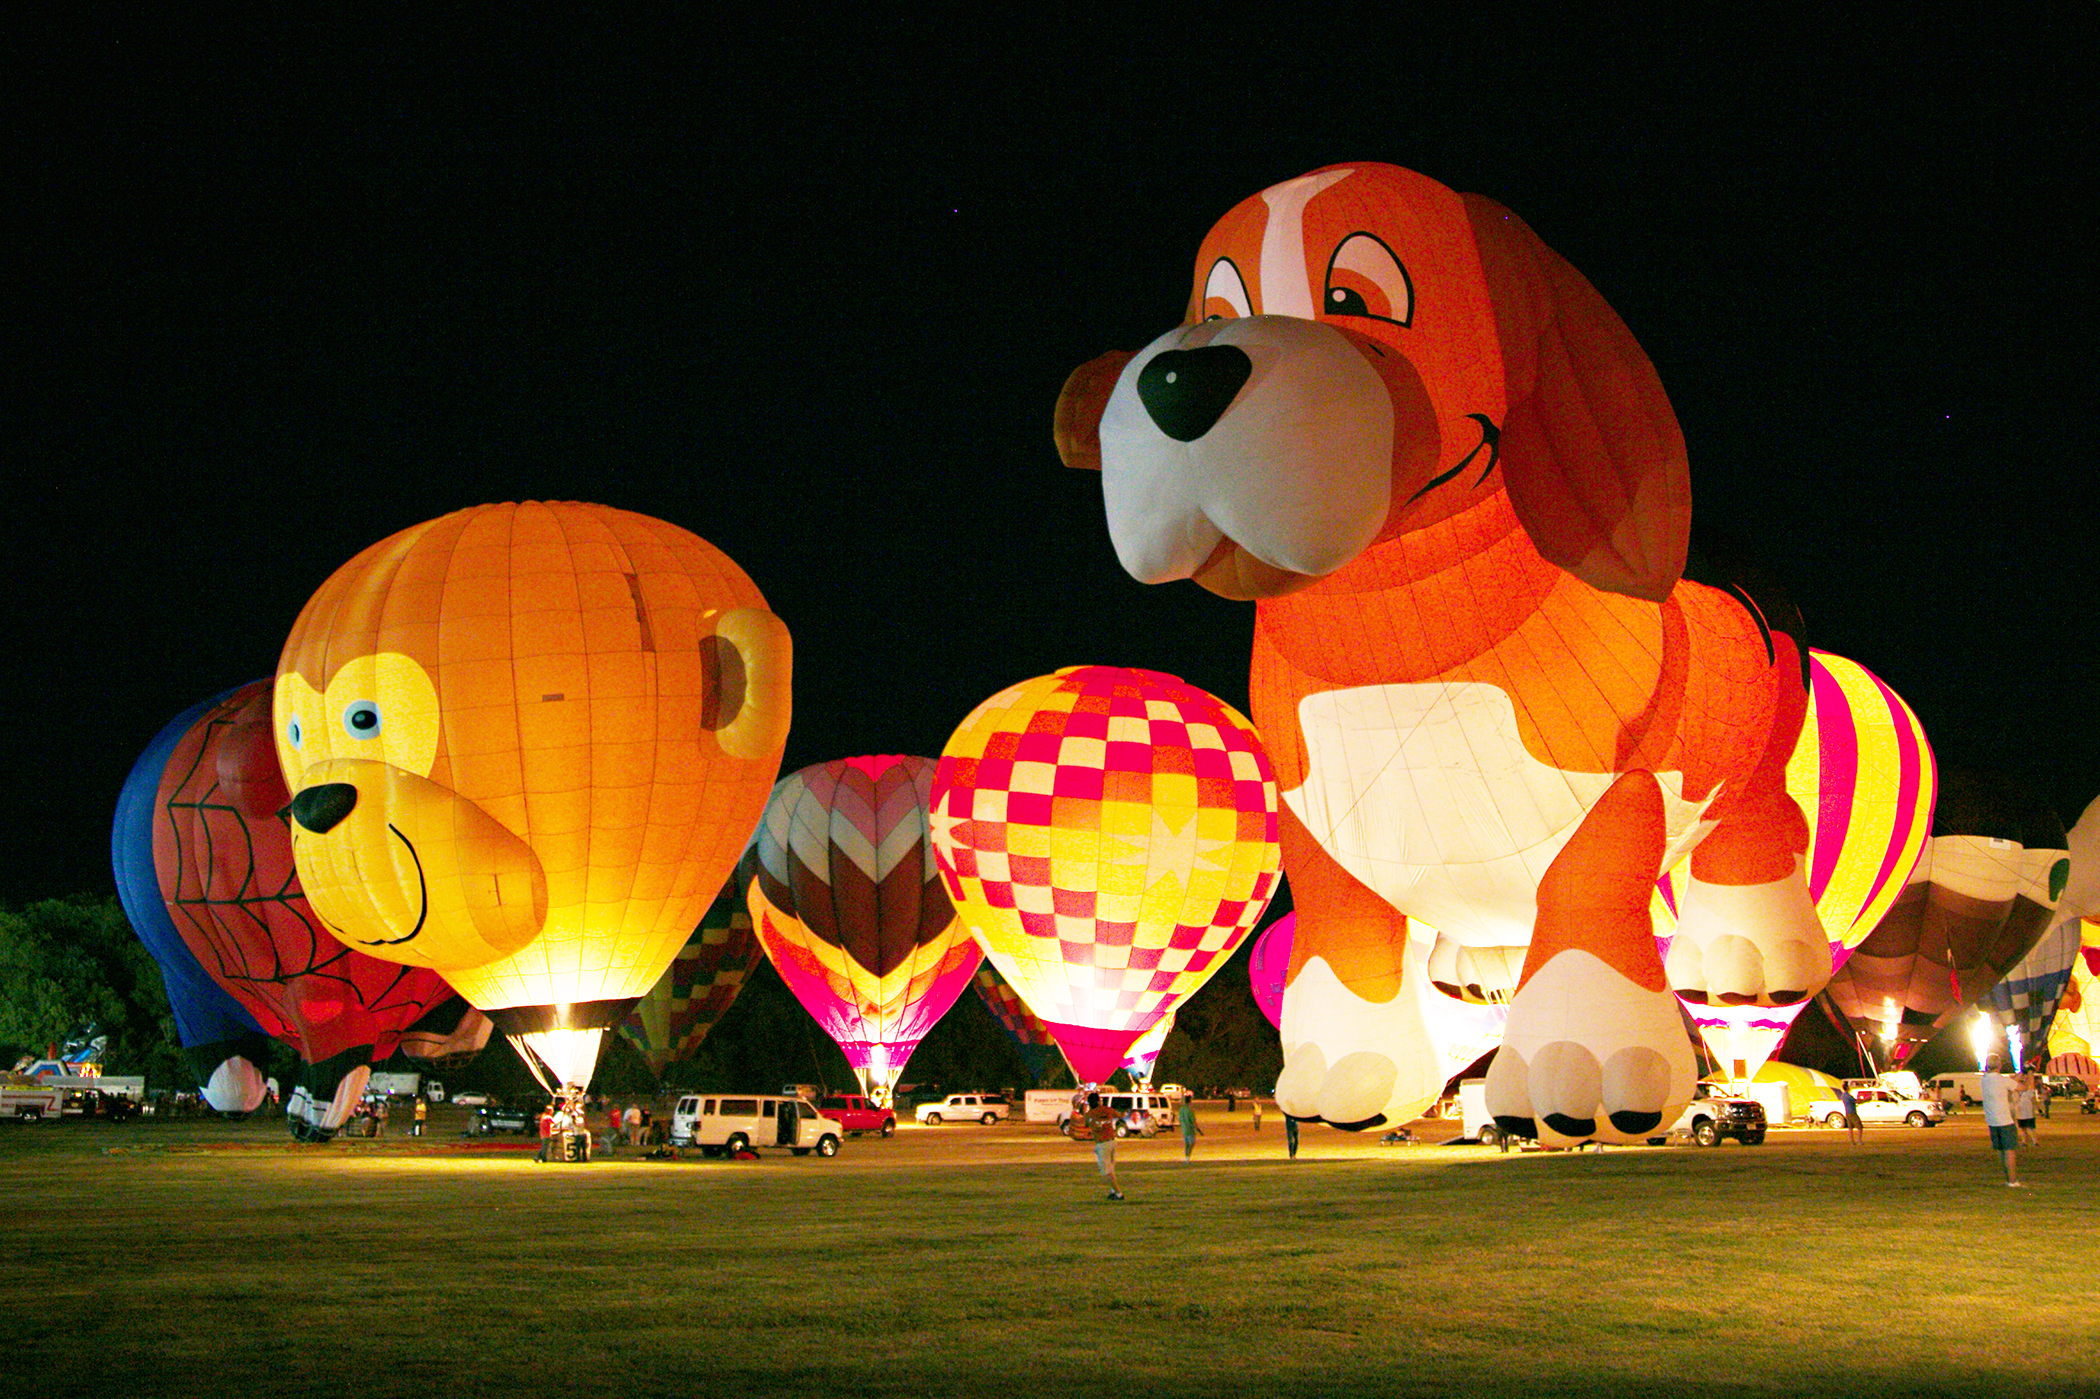 "<strong>Plano, Texas. </strong> The Plano Balloon Festival has become a signature annual event every fall. The rest of the year, Plano is known for making good on its motto—""A great place to do business,"" which has helped draw companies including J.C. Penney, Frito-Lay, and Bank of America to town."